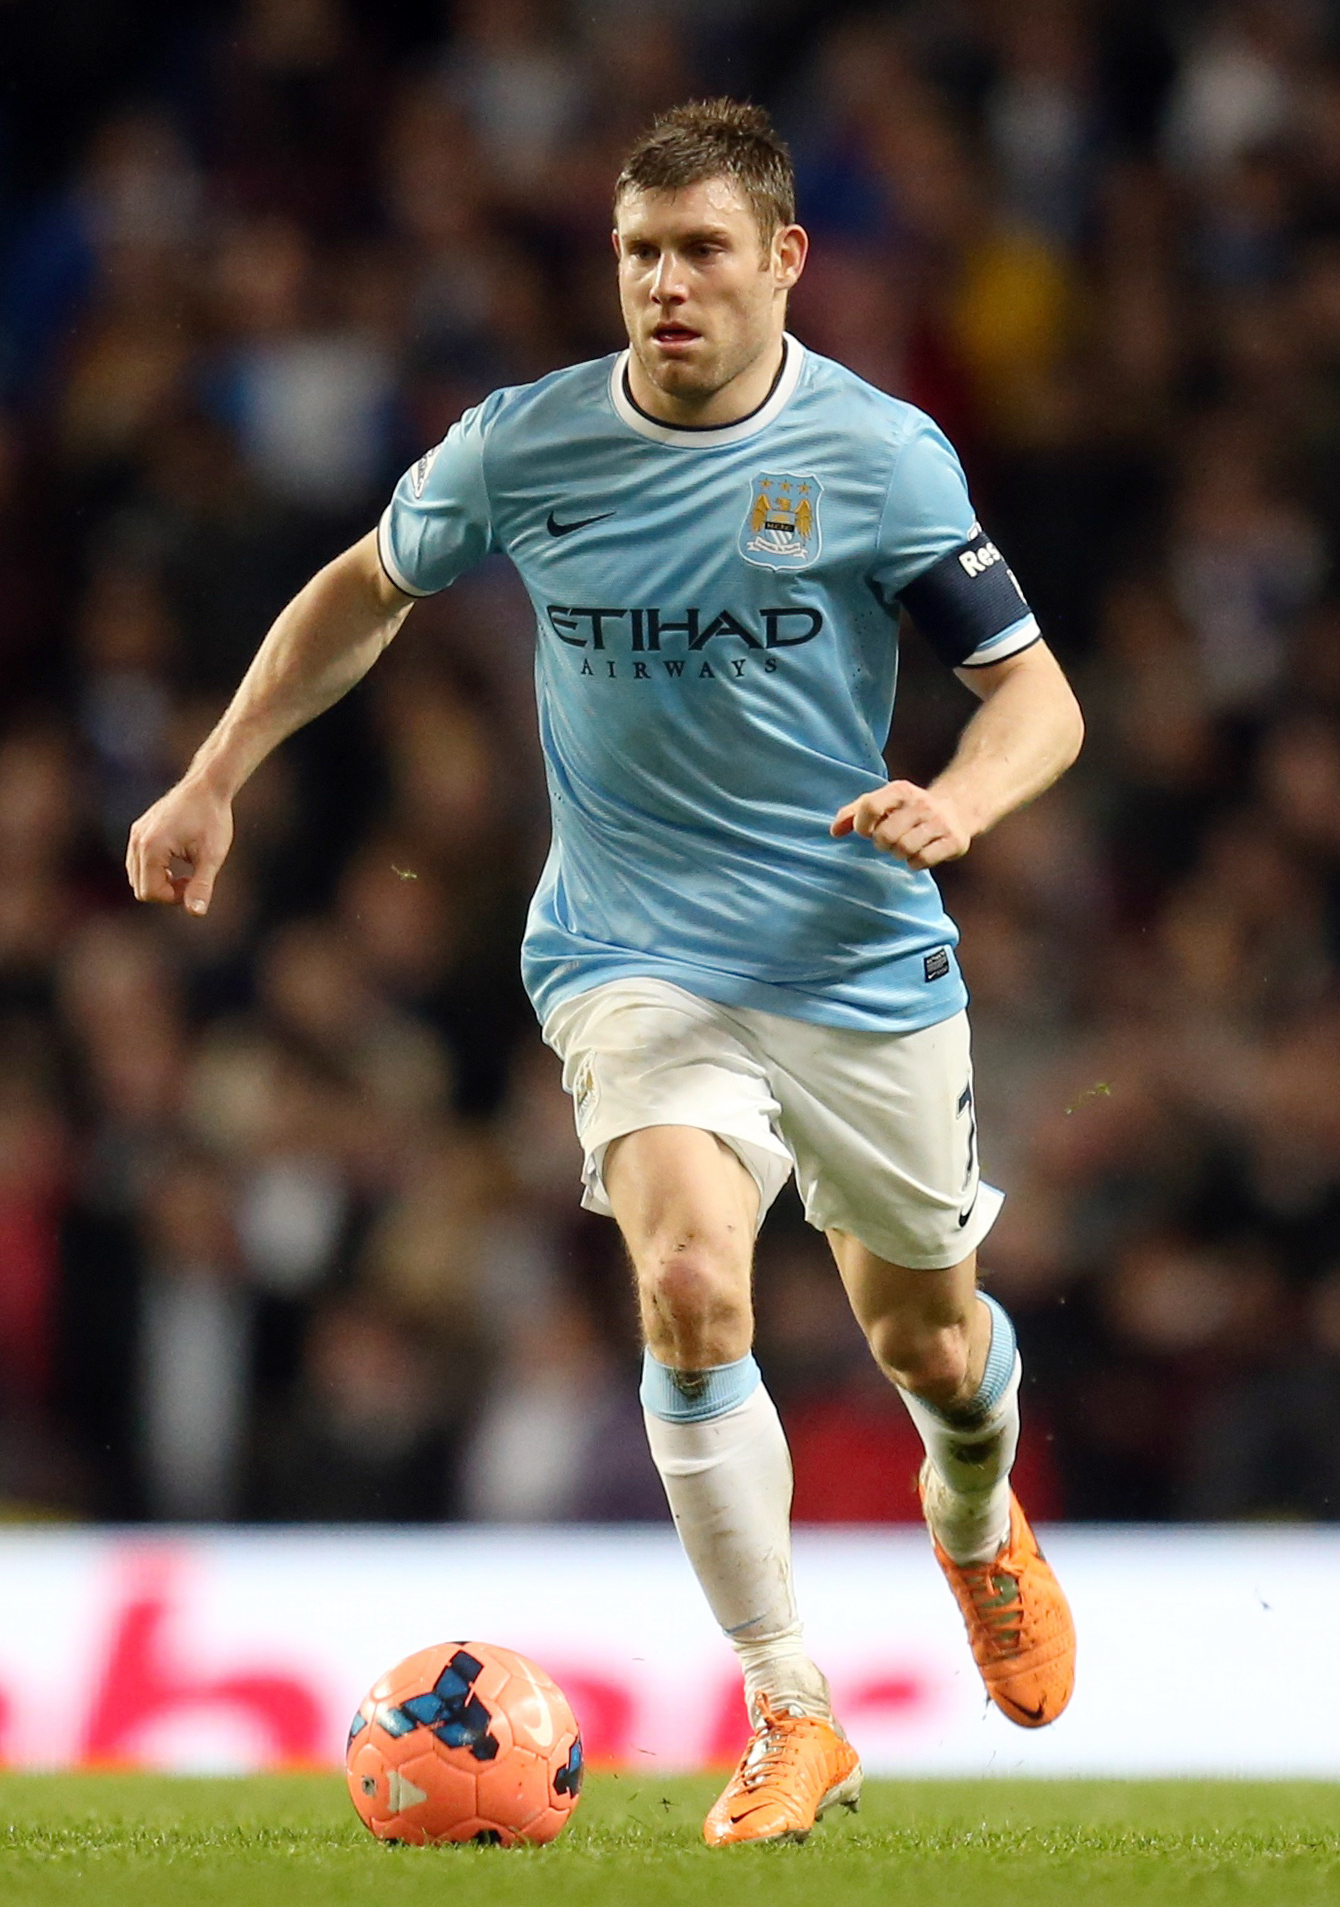 Milner in FA Cup action for the Citizens.